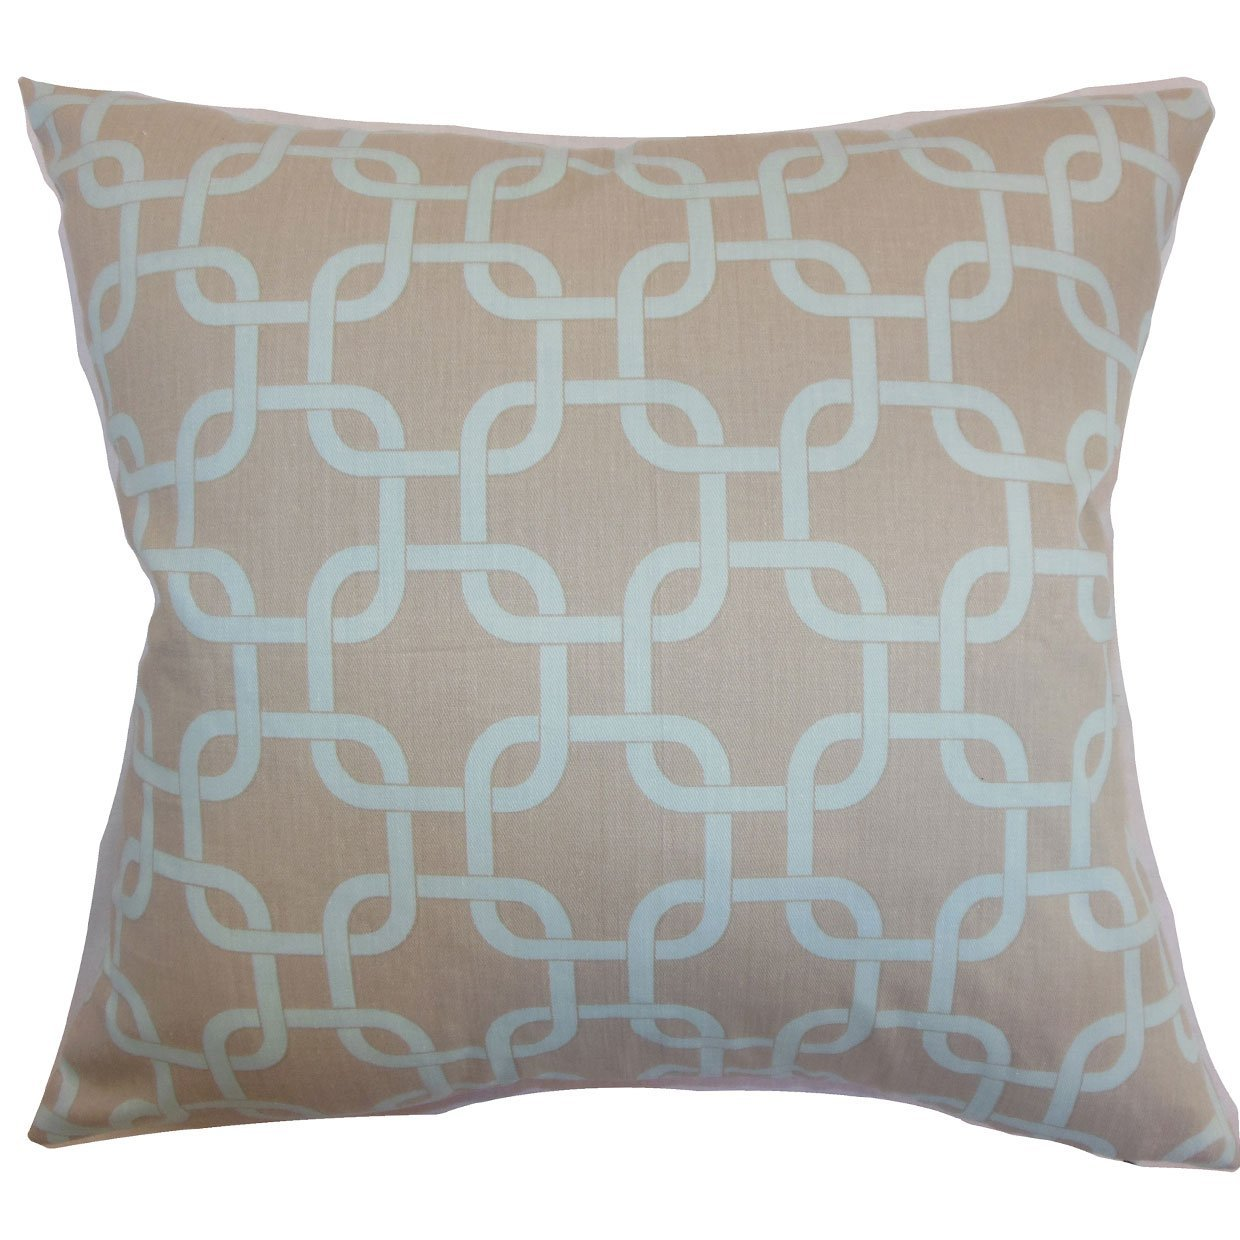 Hilliard Throw Pillow Cover